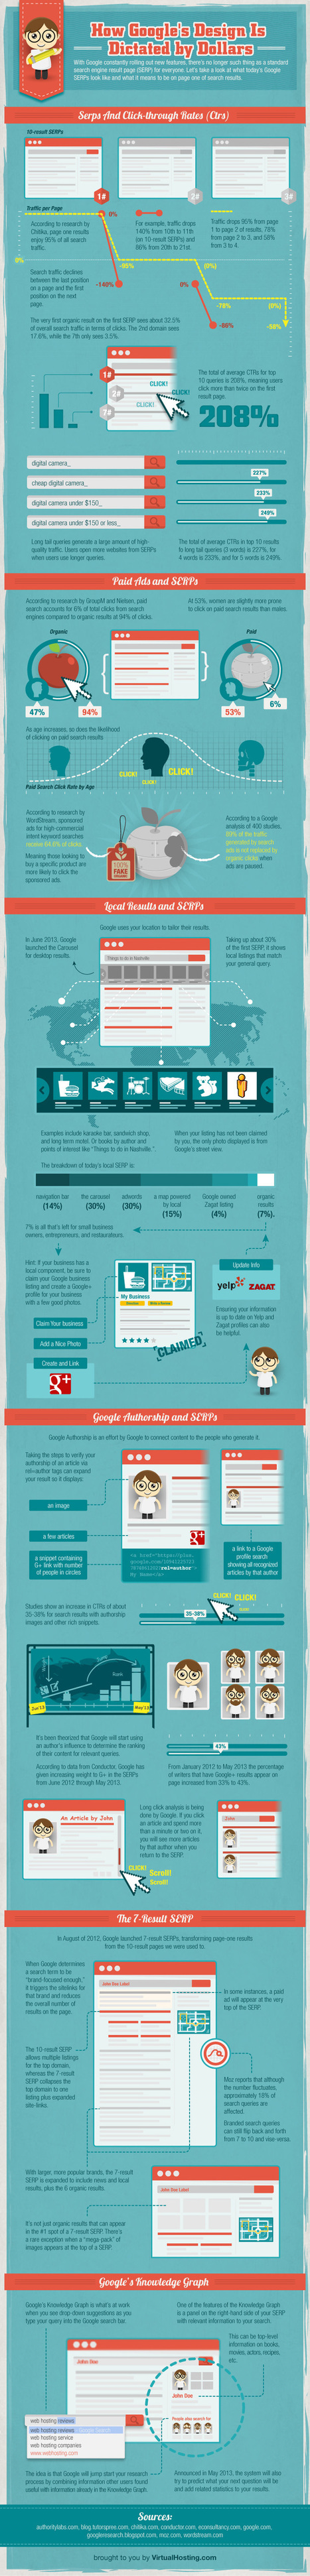 What's Behind The New Google Design? Understanding Google's Search Results Page (Infographic) | What's New At Social Media | Scoop.it